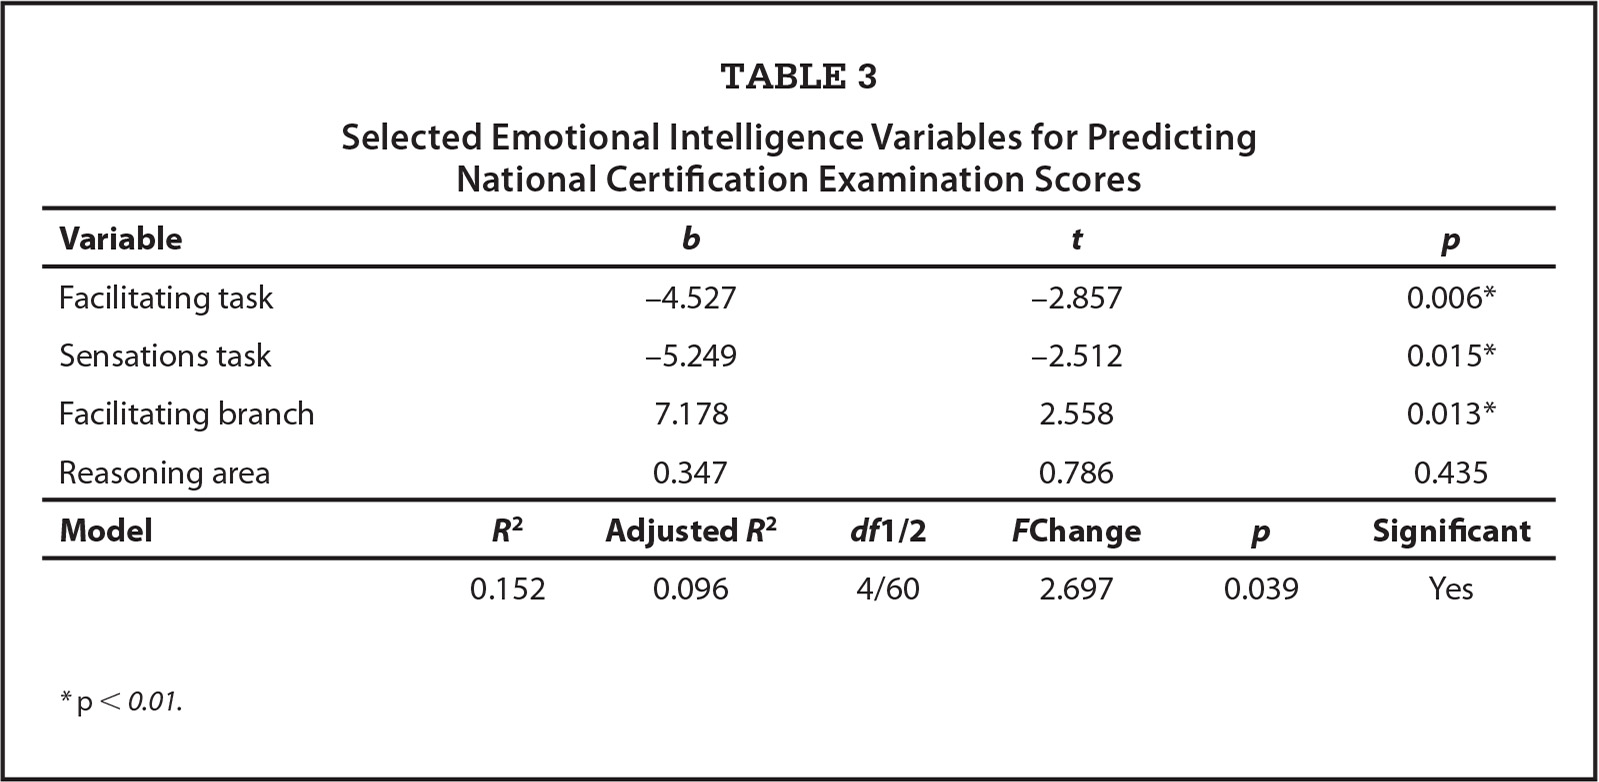 Selected Emotional Intelligence Variables for Predicting National Certification Examination Scores